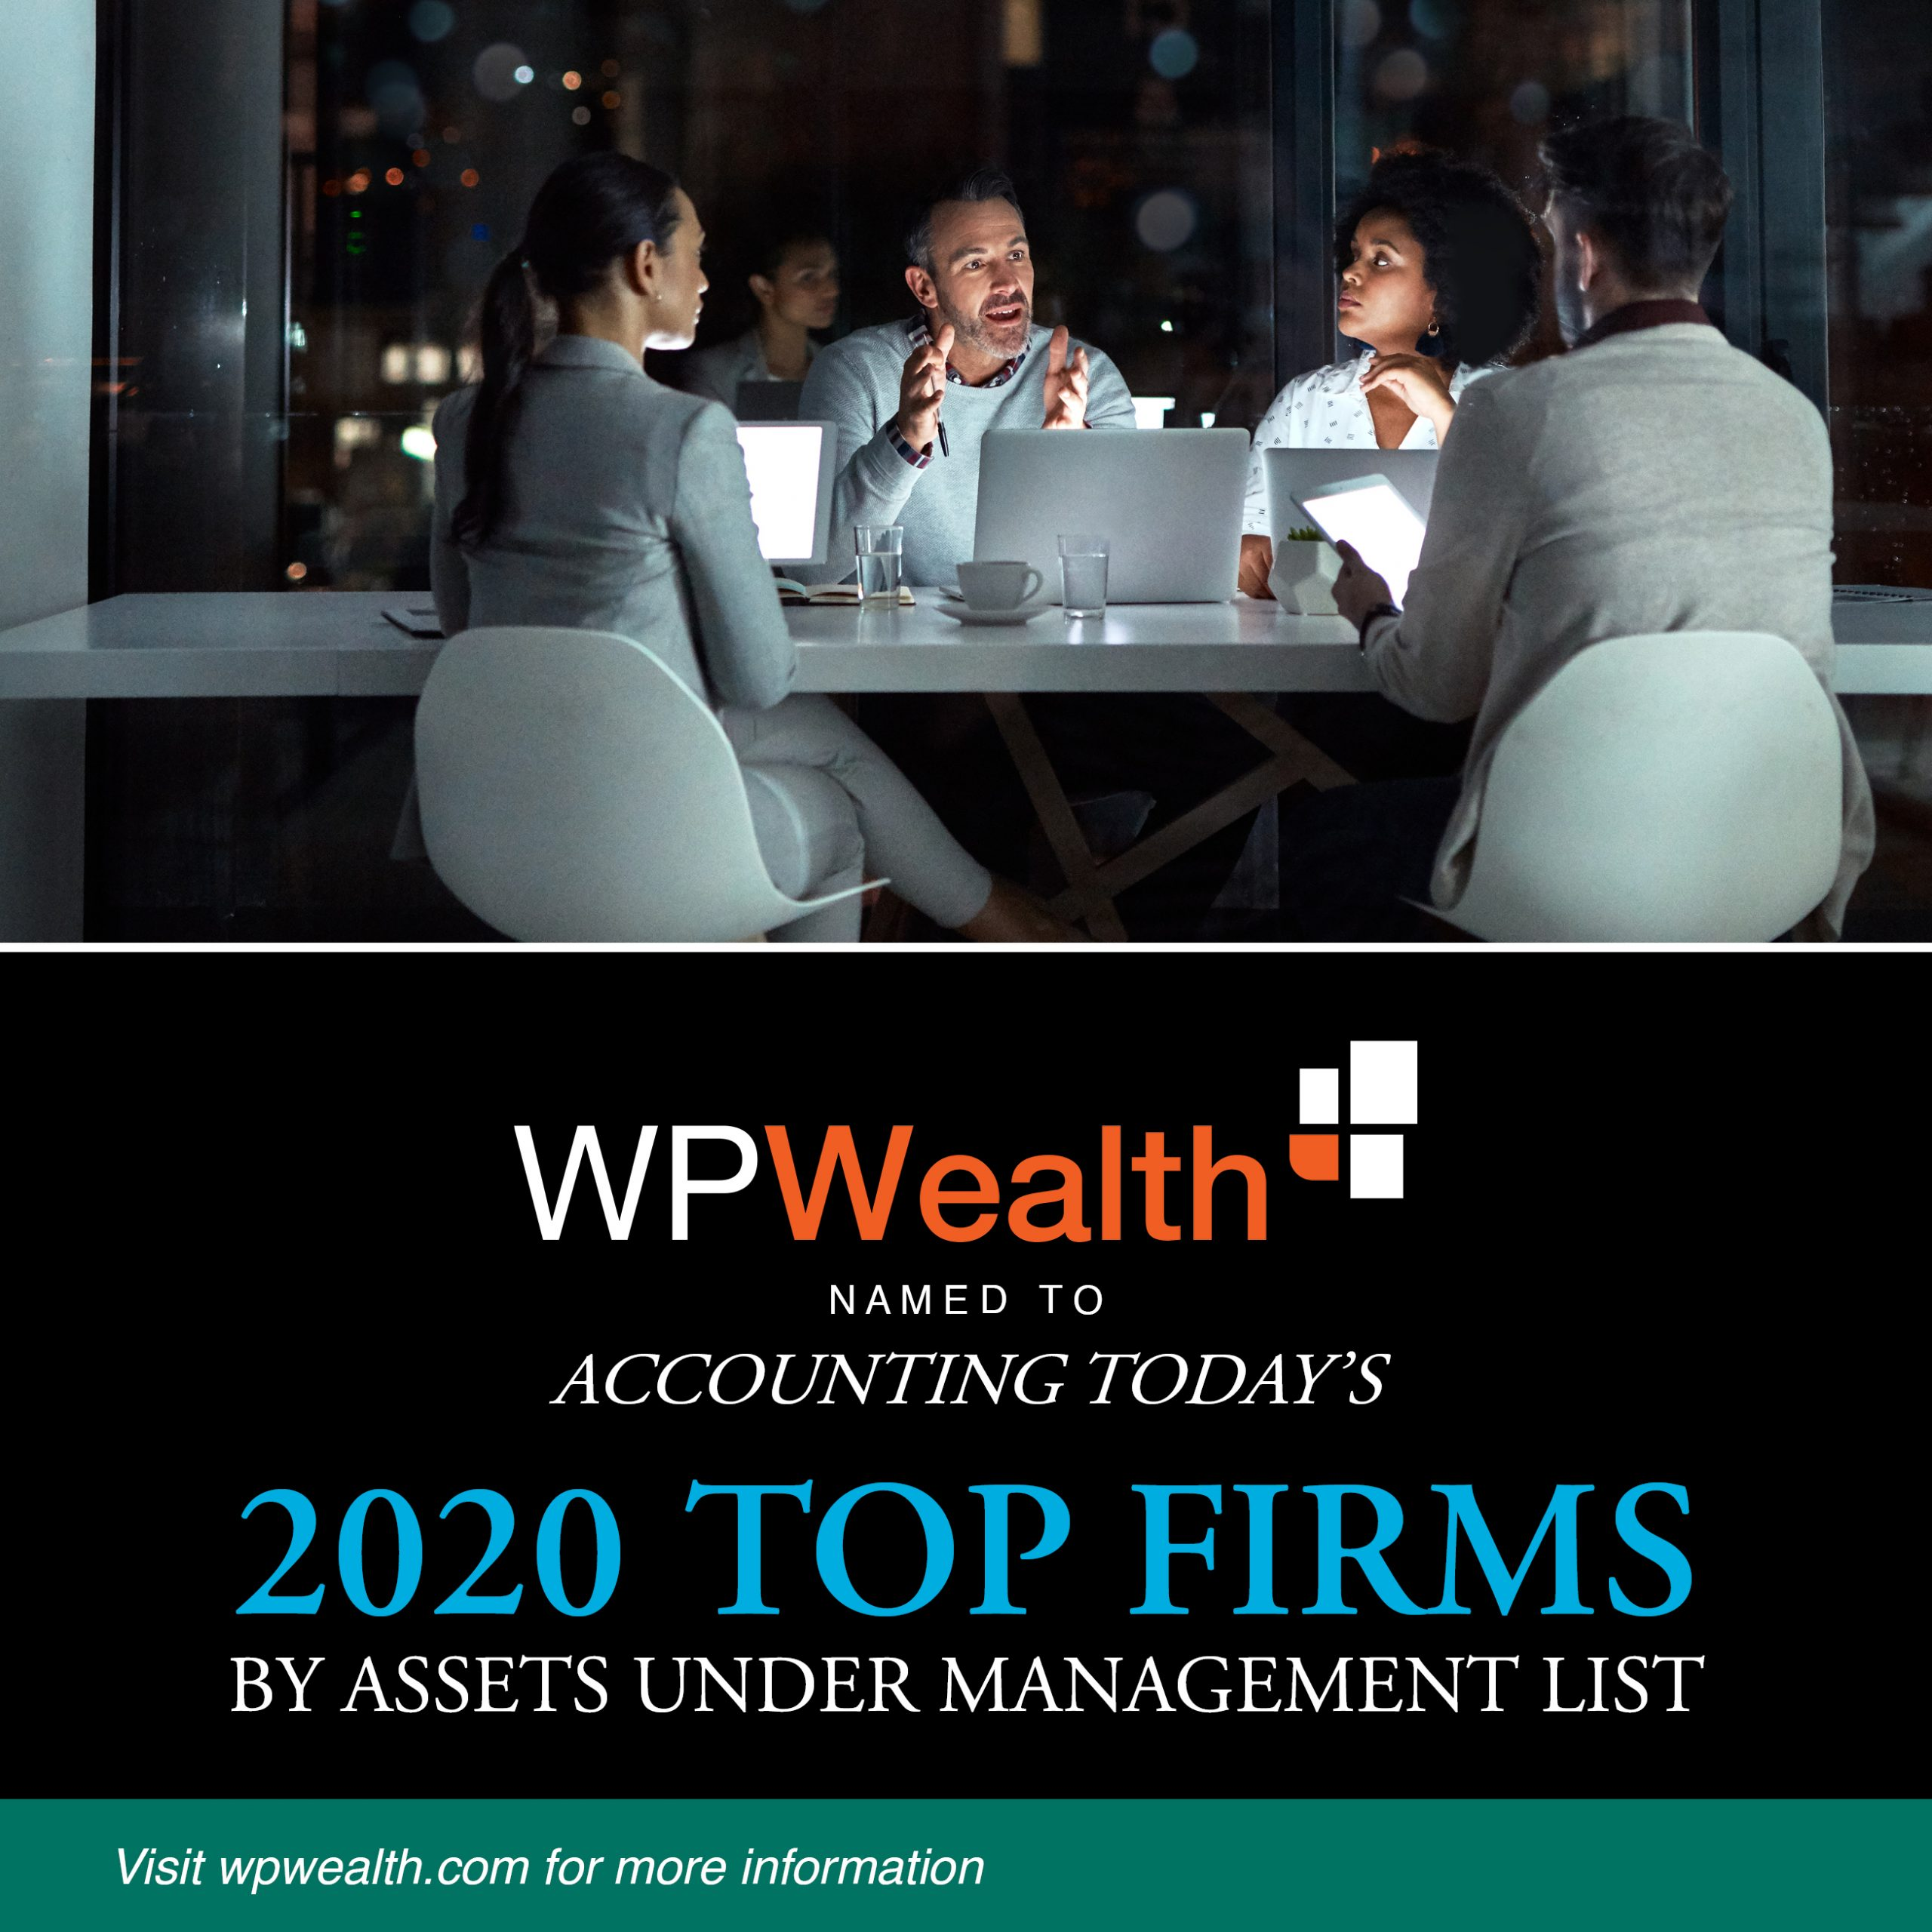 WPWealth named to Accounting Today's 2020 Top Firms